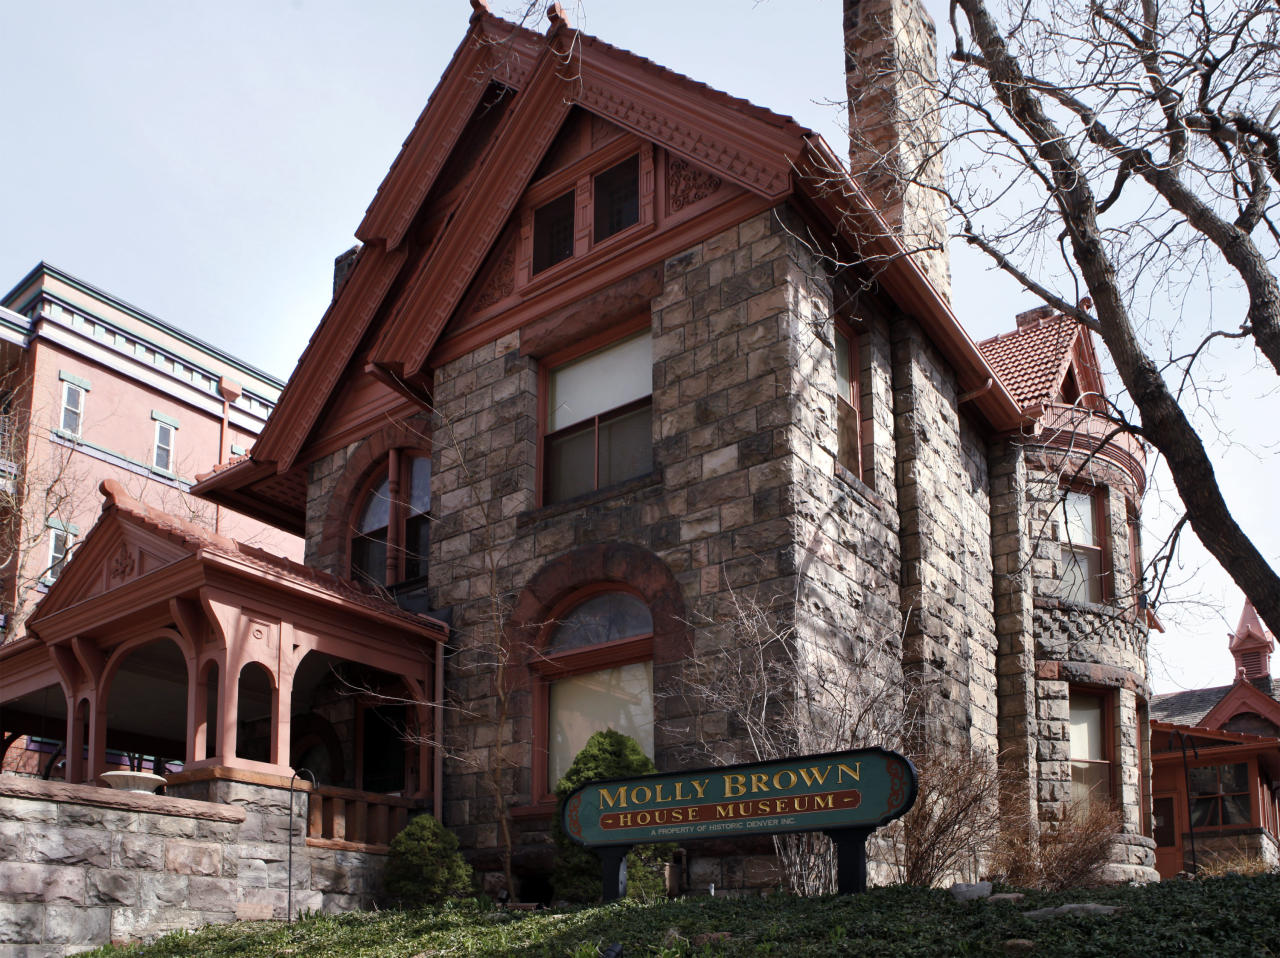 "This March 12, 2012 photo shows the front of the Molly Brown House Museum in Denver. A few blocks from Colorado's state Capitol _ over 1700 miles from the Atlantic Ocean and a mile above sea level _ is a museum dedicated to a woman eclipsed by legend following the sinking of the Titantic. The ""unsinkable Molly Brown"" moved into this stone Victorian home after she and her husband struck it rich at a gold mine in Colorado's mountains, nearly 20 years before she boarded the Titanic because it was the first boat she could get back home on to visit her ailing grandson. (AP Photo/Ed Andrieski)"